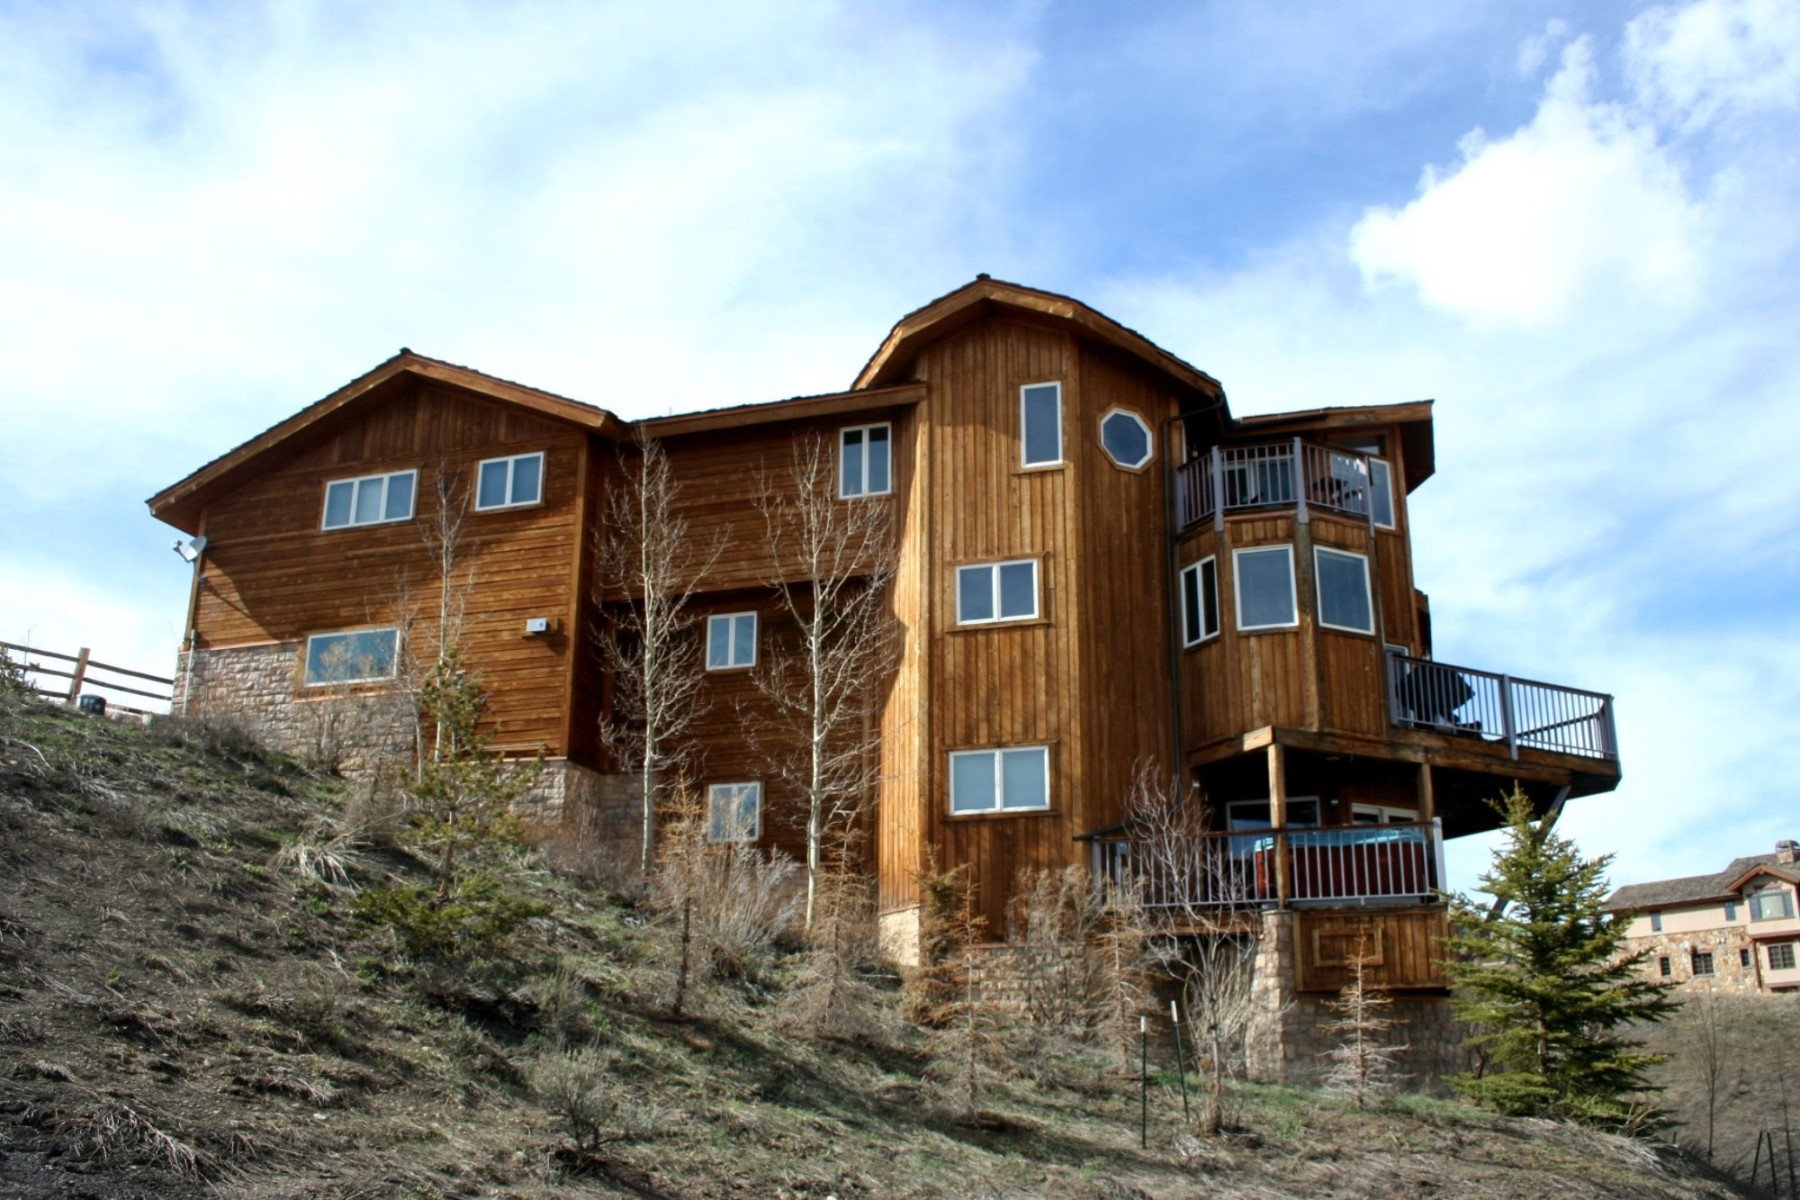 Maison unifamiliale pour l Vente à Inspiring Mountain Home 18 Buttercup Lane Mount Crested Butte, Colorado, 81225 États-Unis